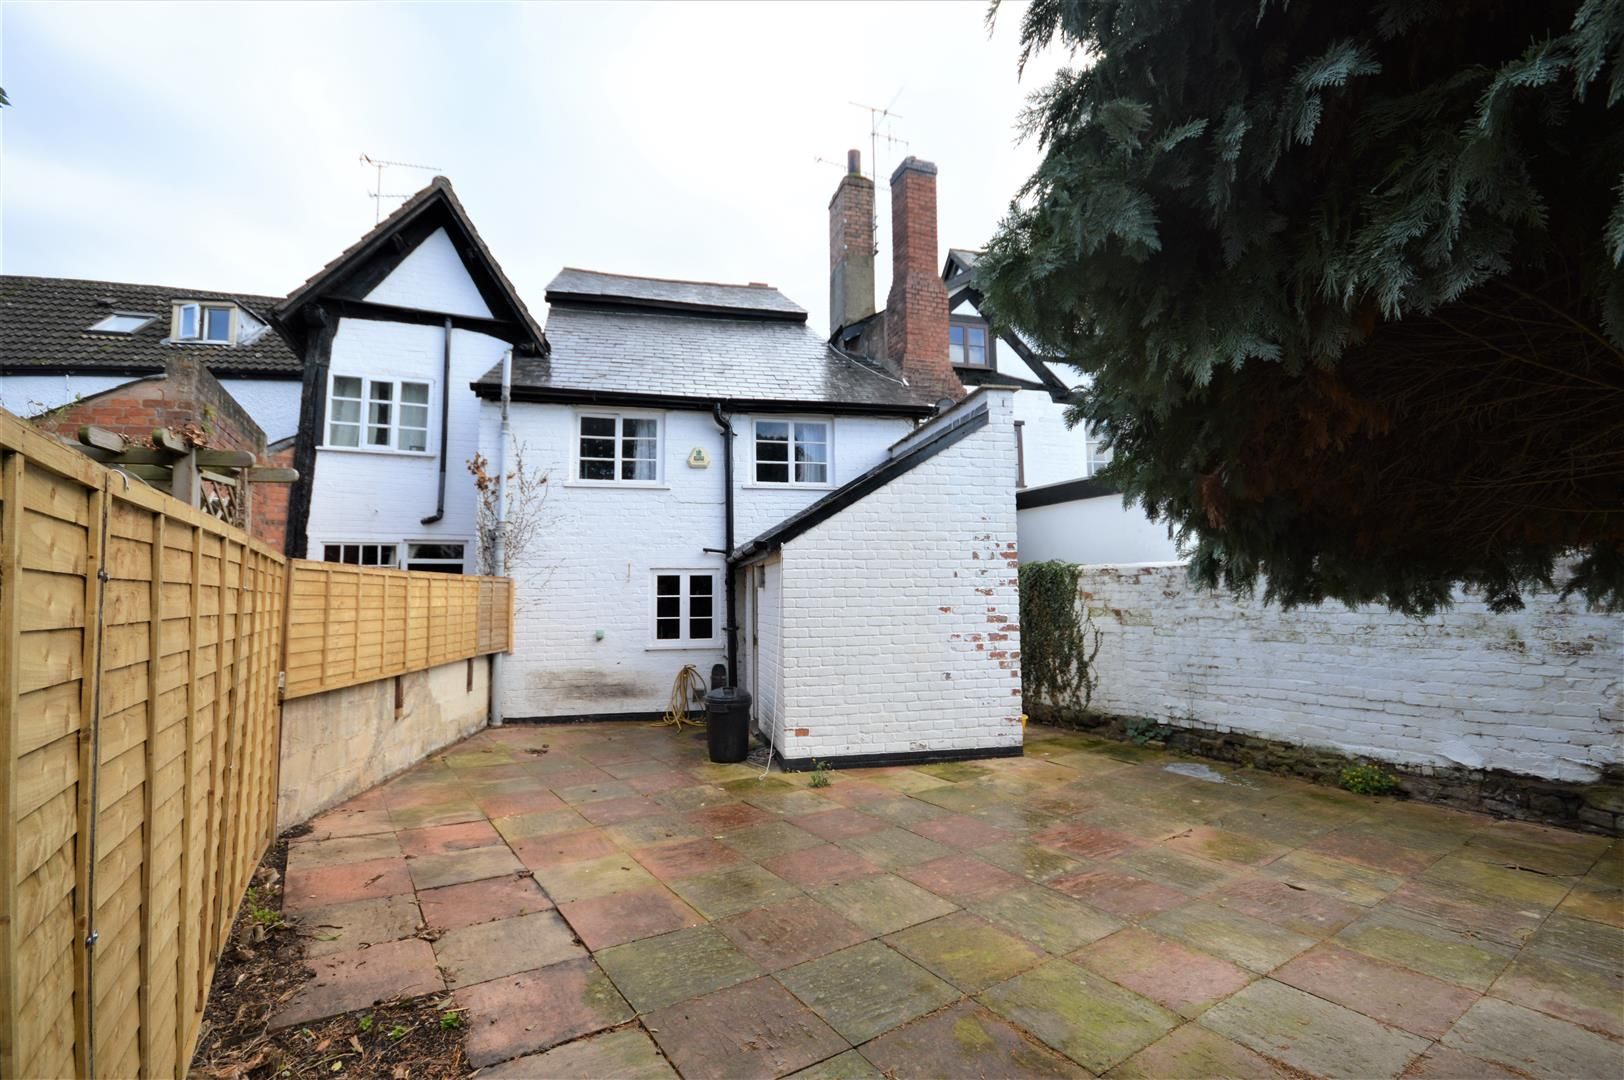 4 bed terraced for sale in Leominster  - Property Image 10